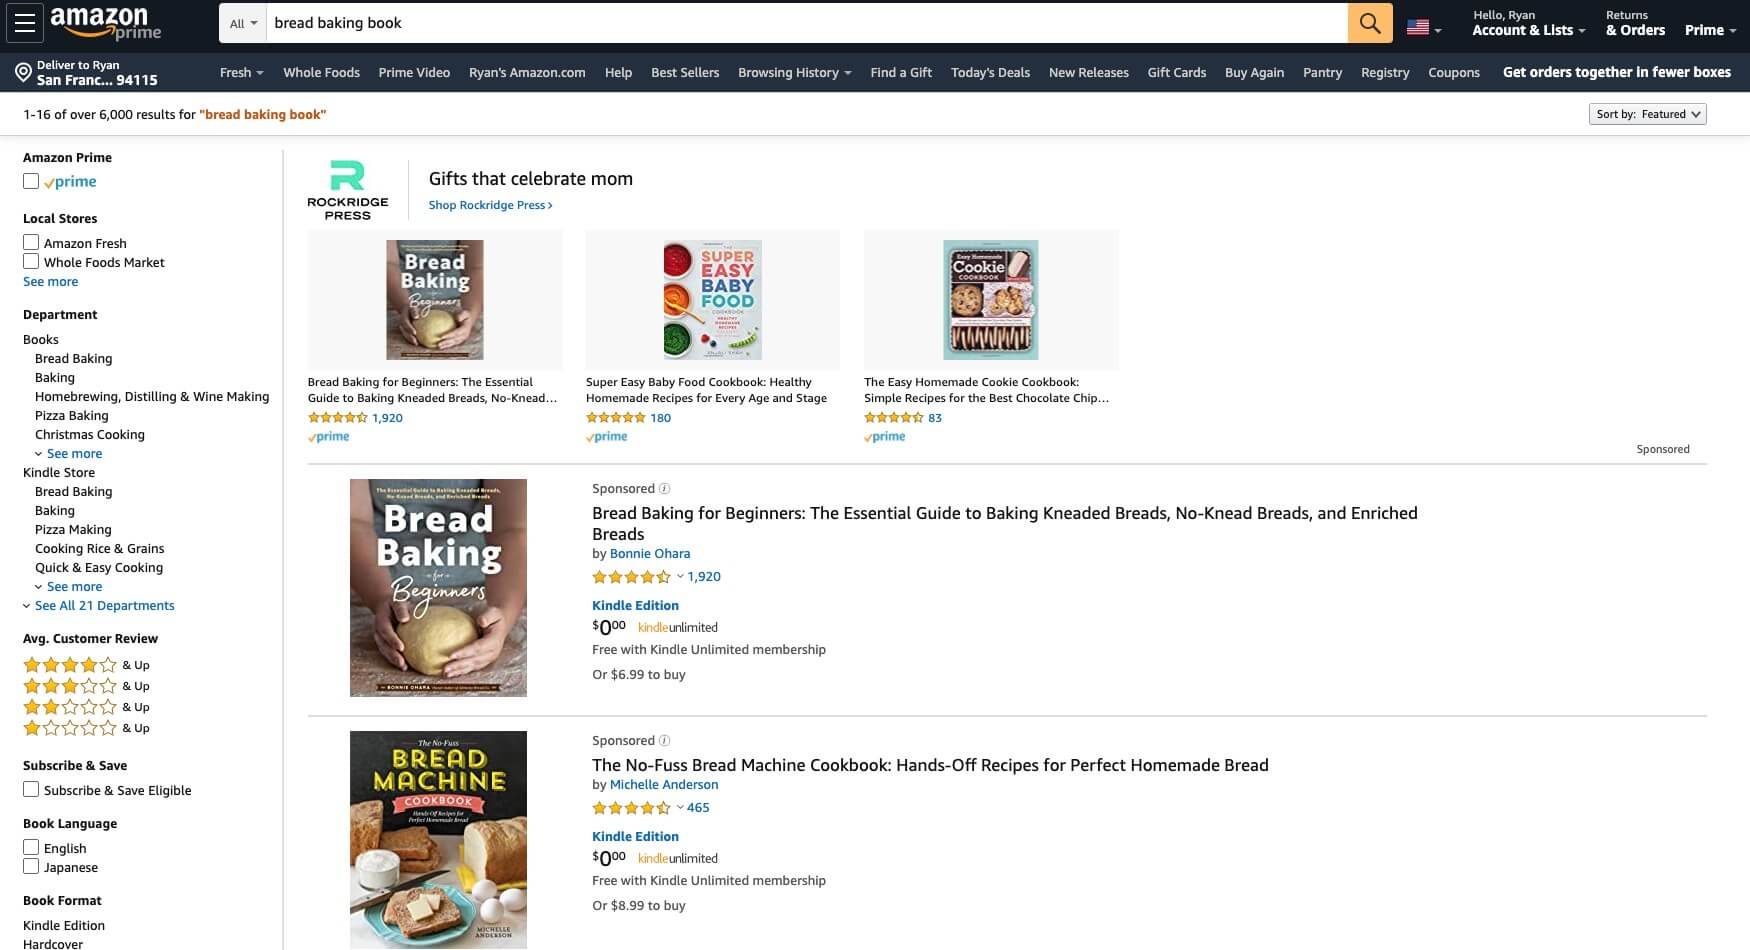 How to Sell an eBook on Amazon (Screenshot of Amazon Sales Page)